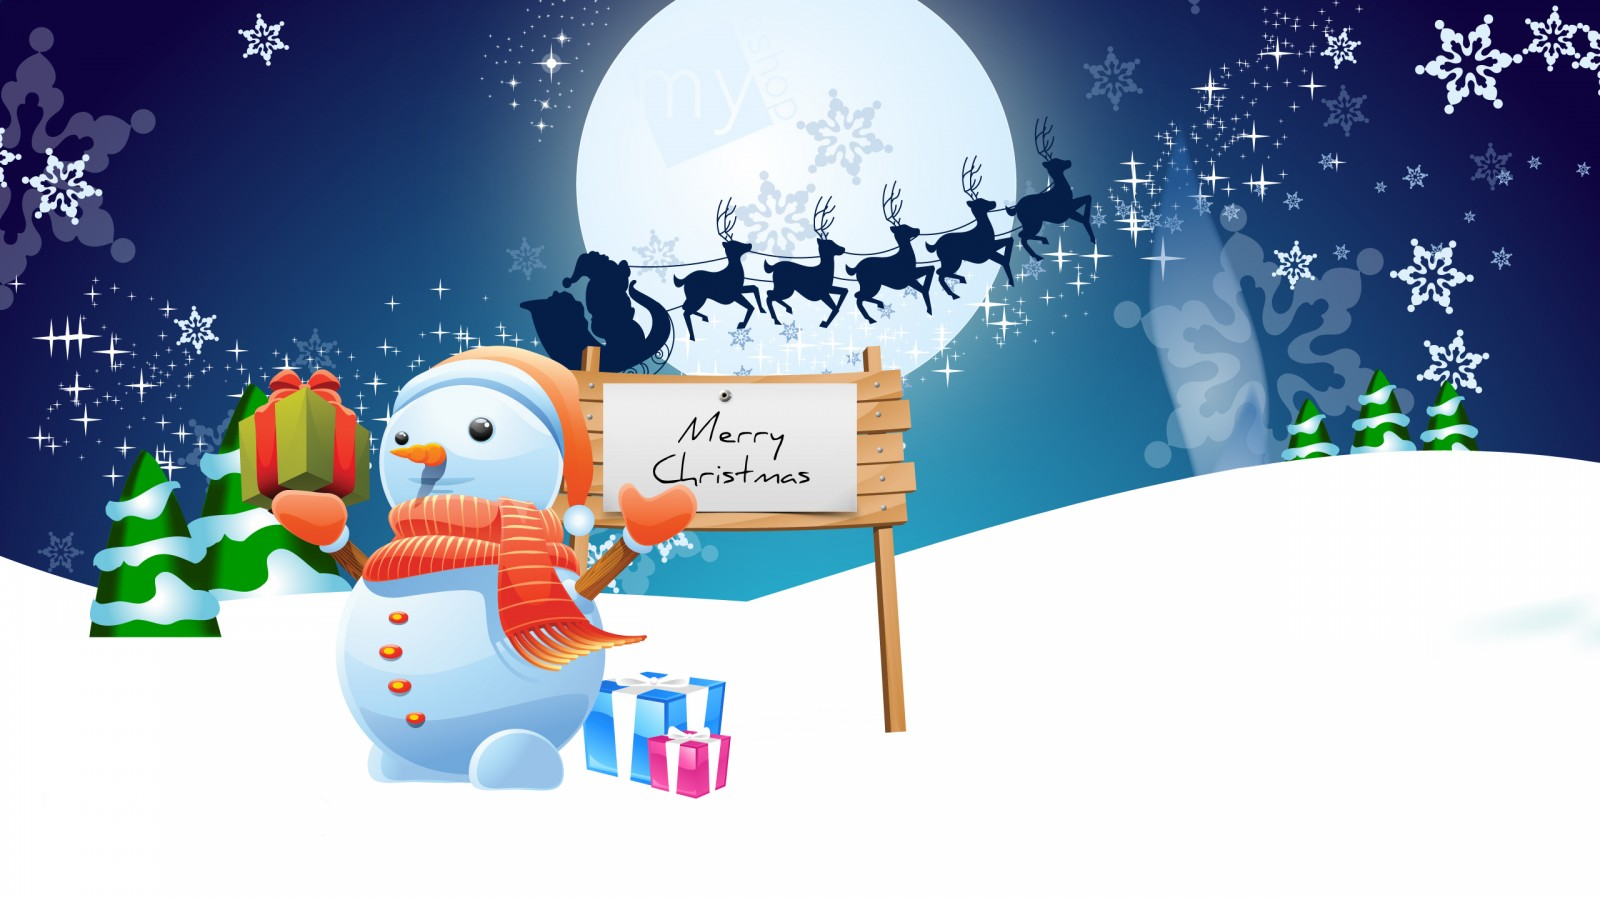 Merry Xmas 3d Wallpaper Snowman Merry Christmas Wallpapers Hd Wallpapers Id 10574